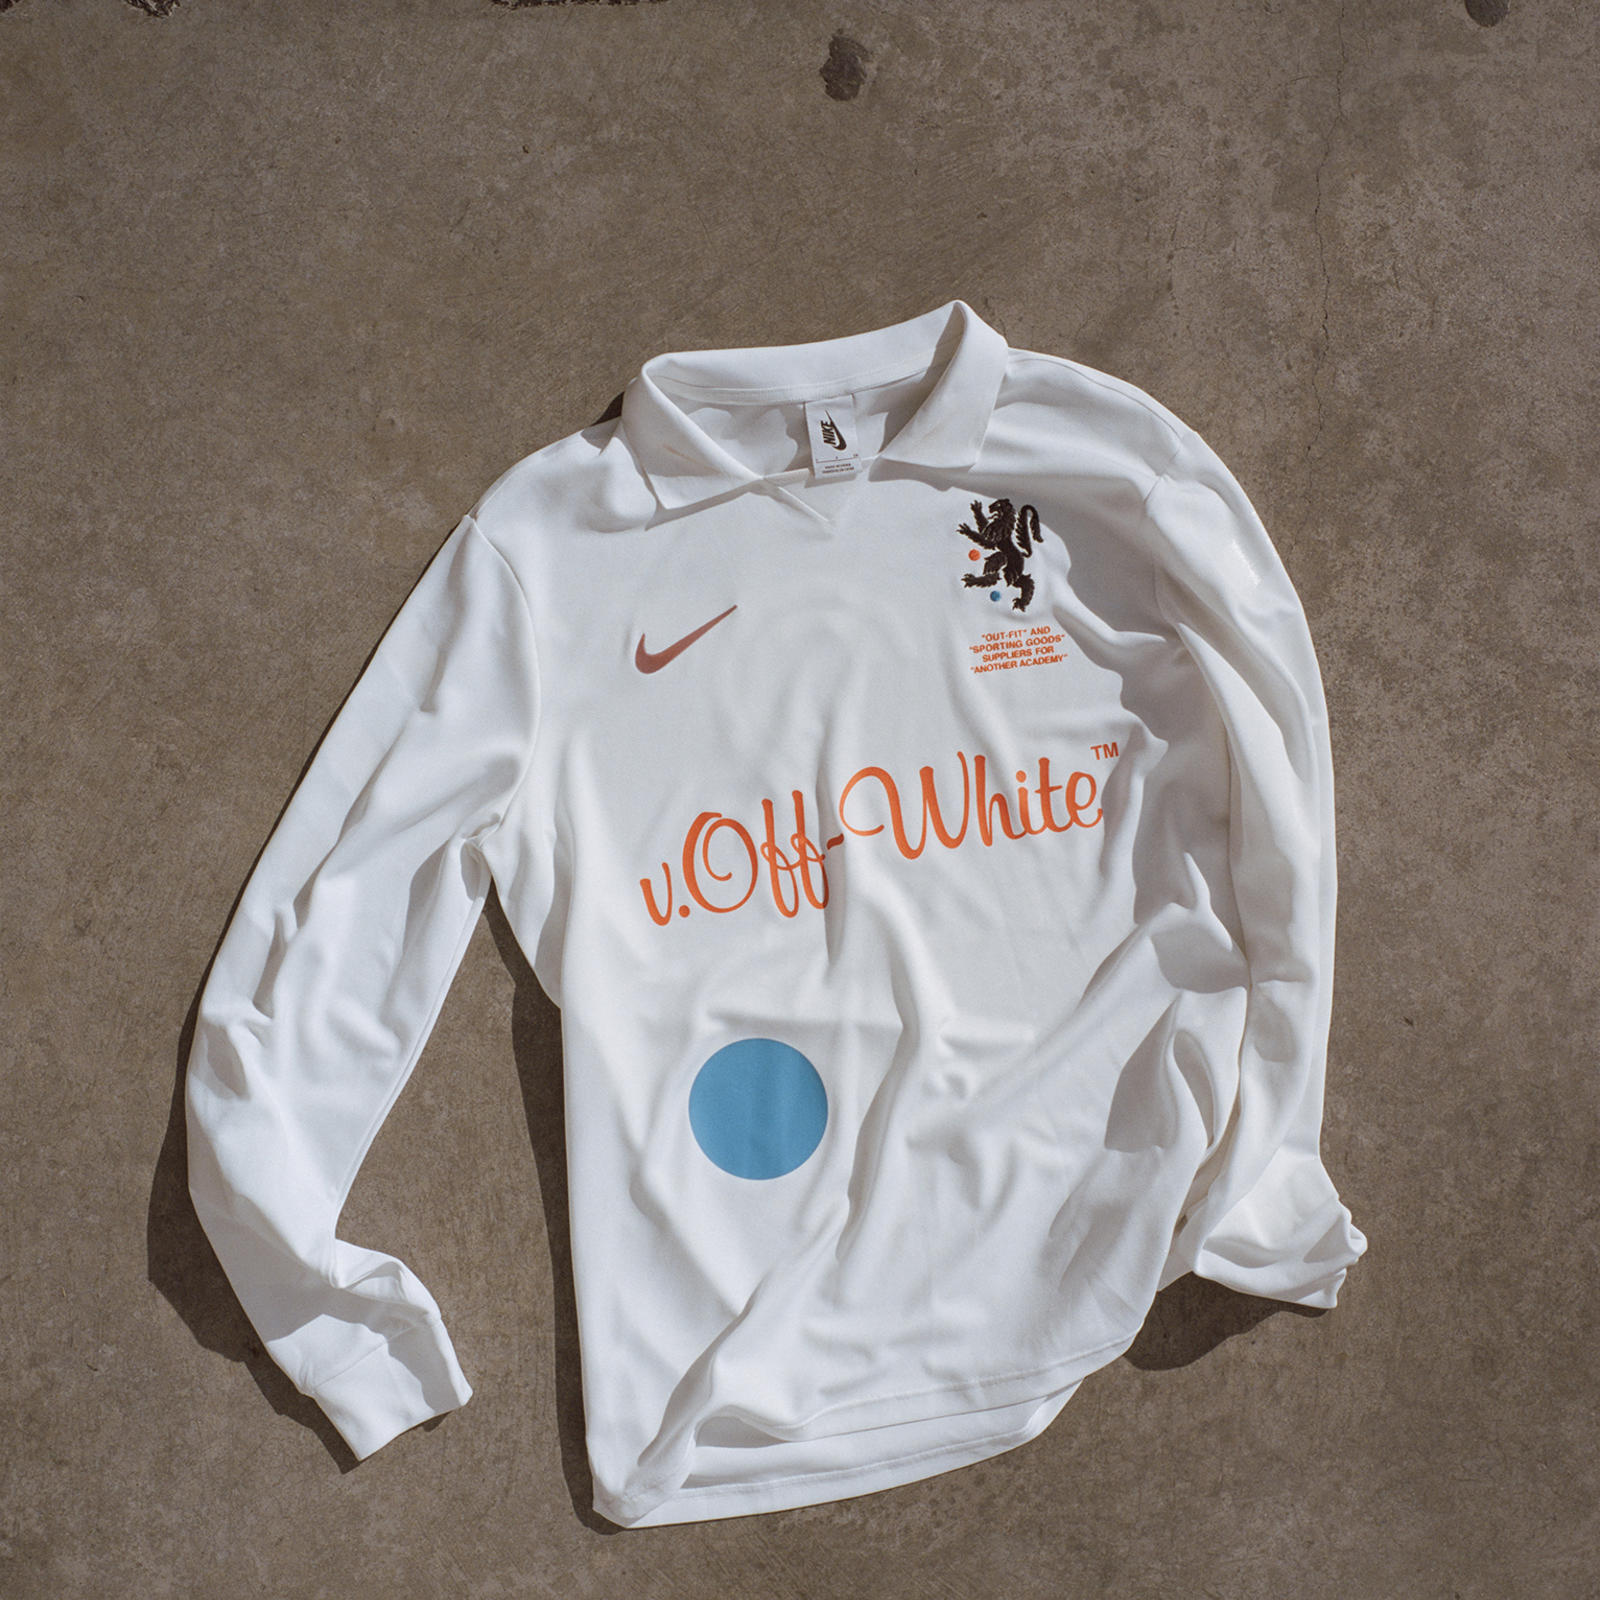 f9ef915d ... Nike x Off-White Away Soccer Jersey. Expressions of Football 11